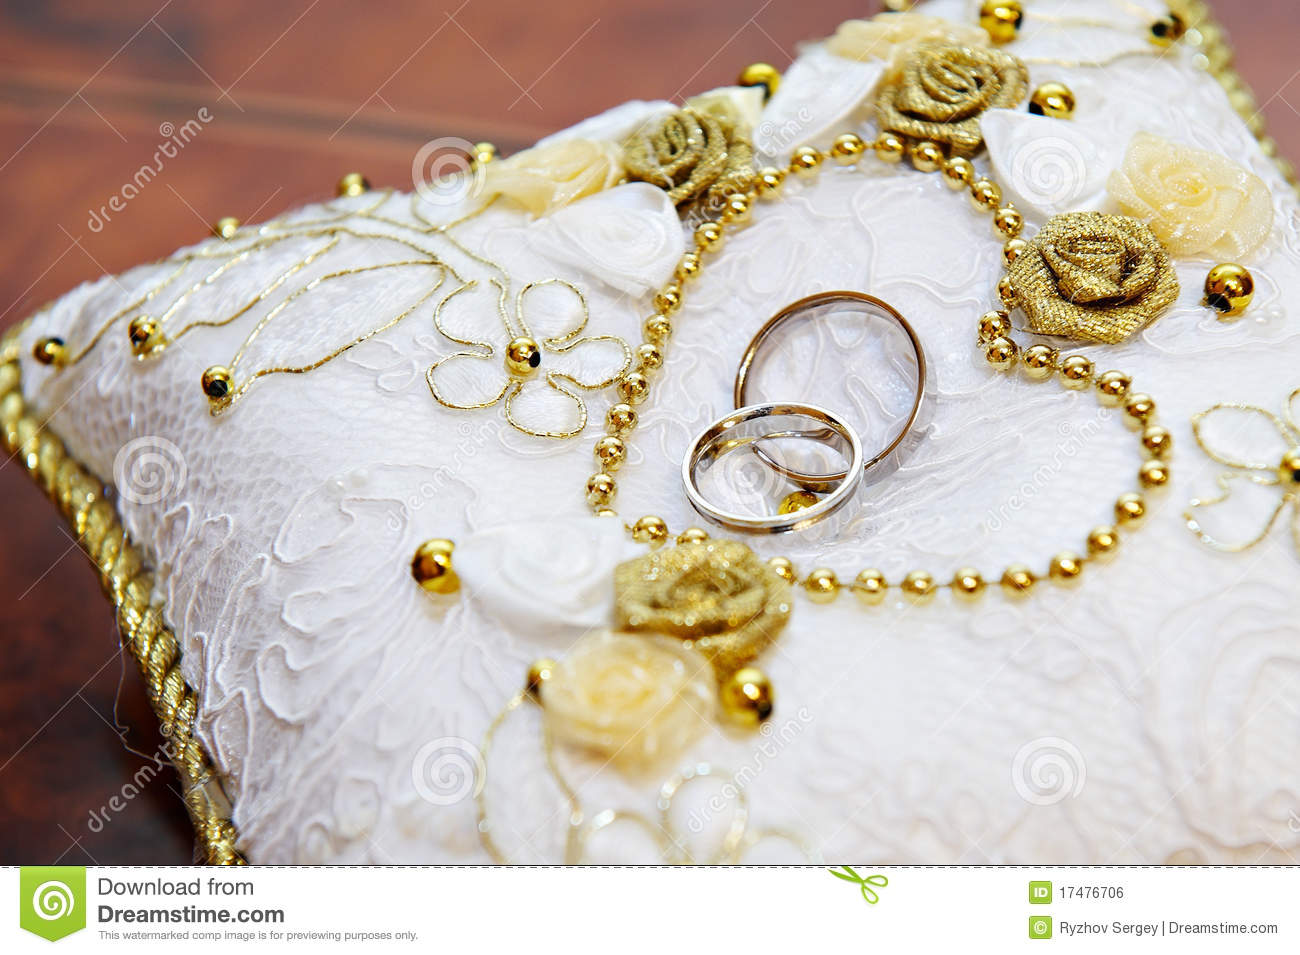 Gold Wedding Ring On Pillow Stock Photo Image of together bride